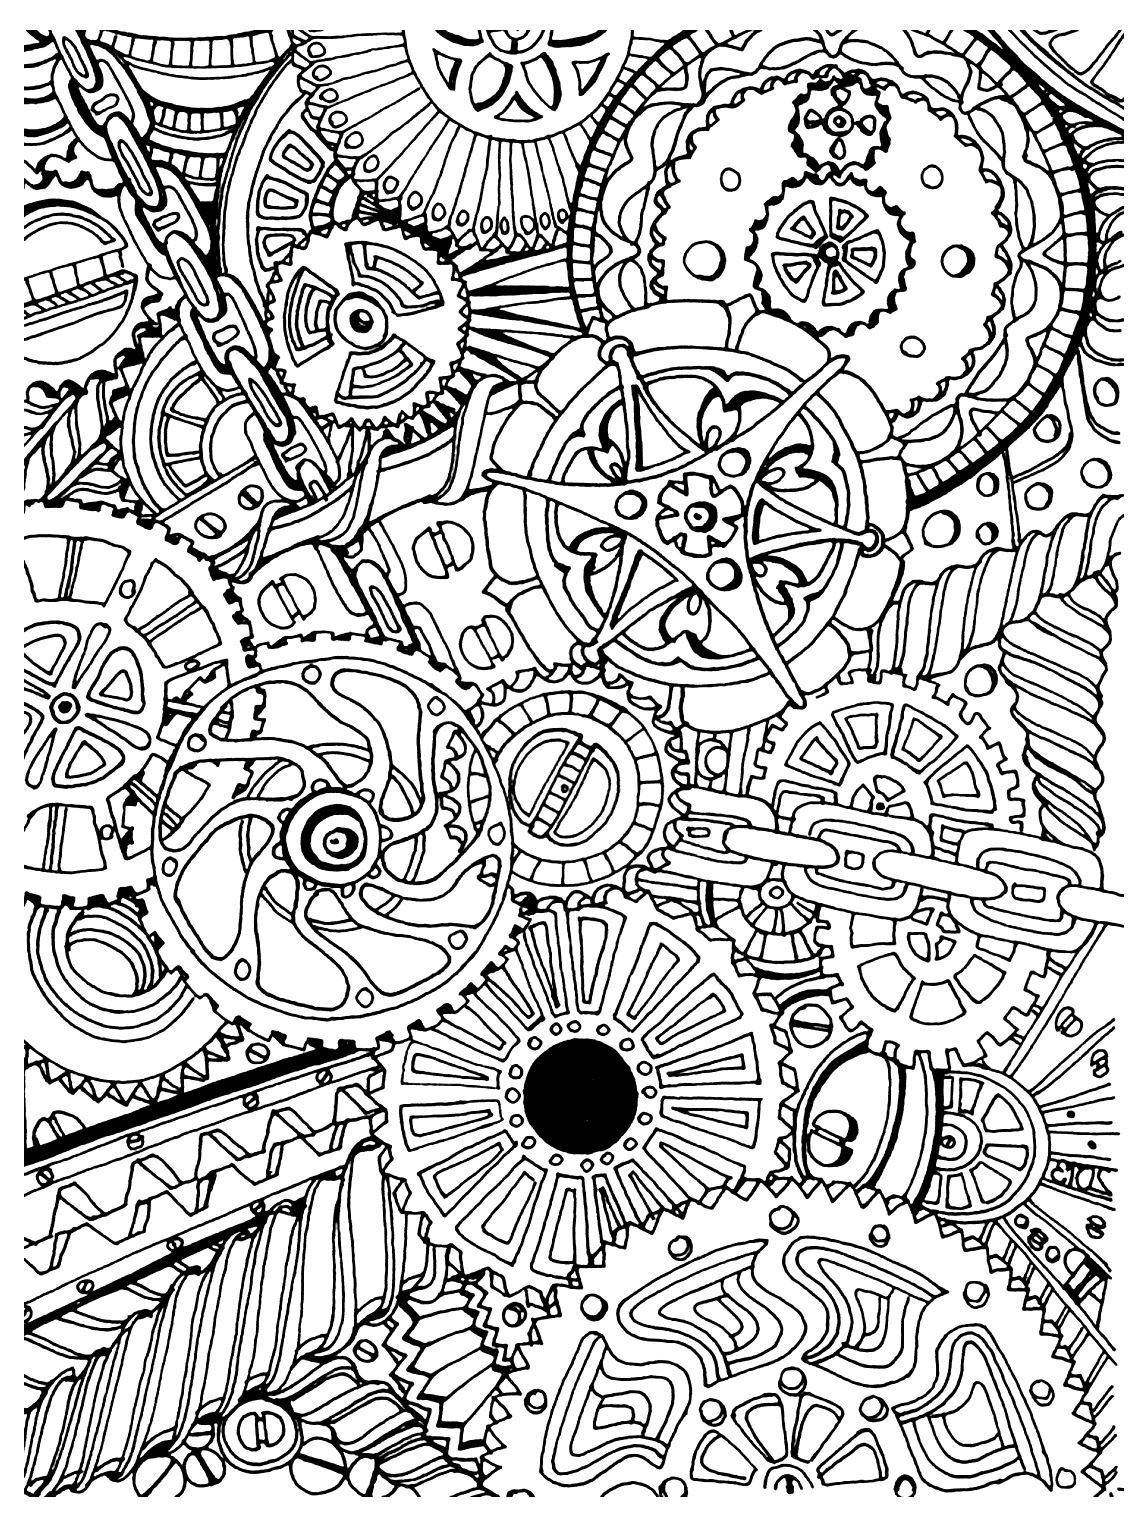 To Print This Free Coloring Page Â«coloring